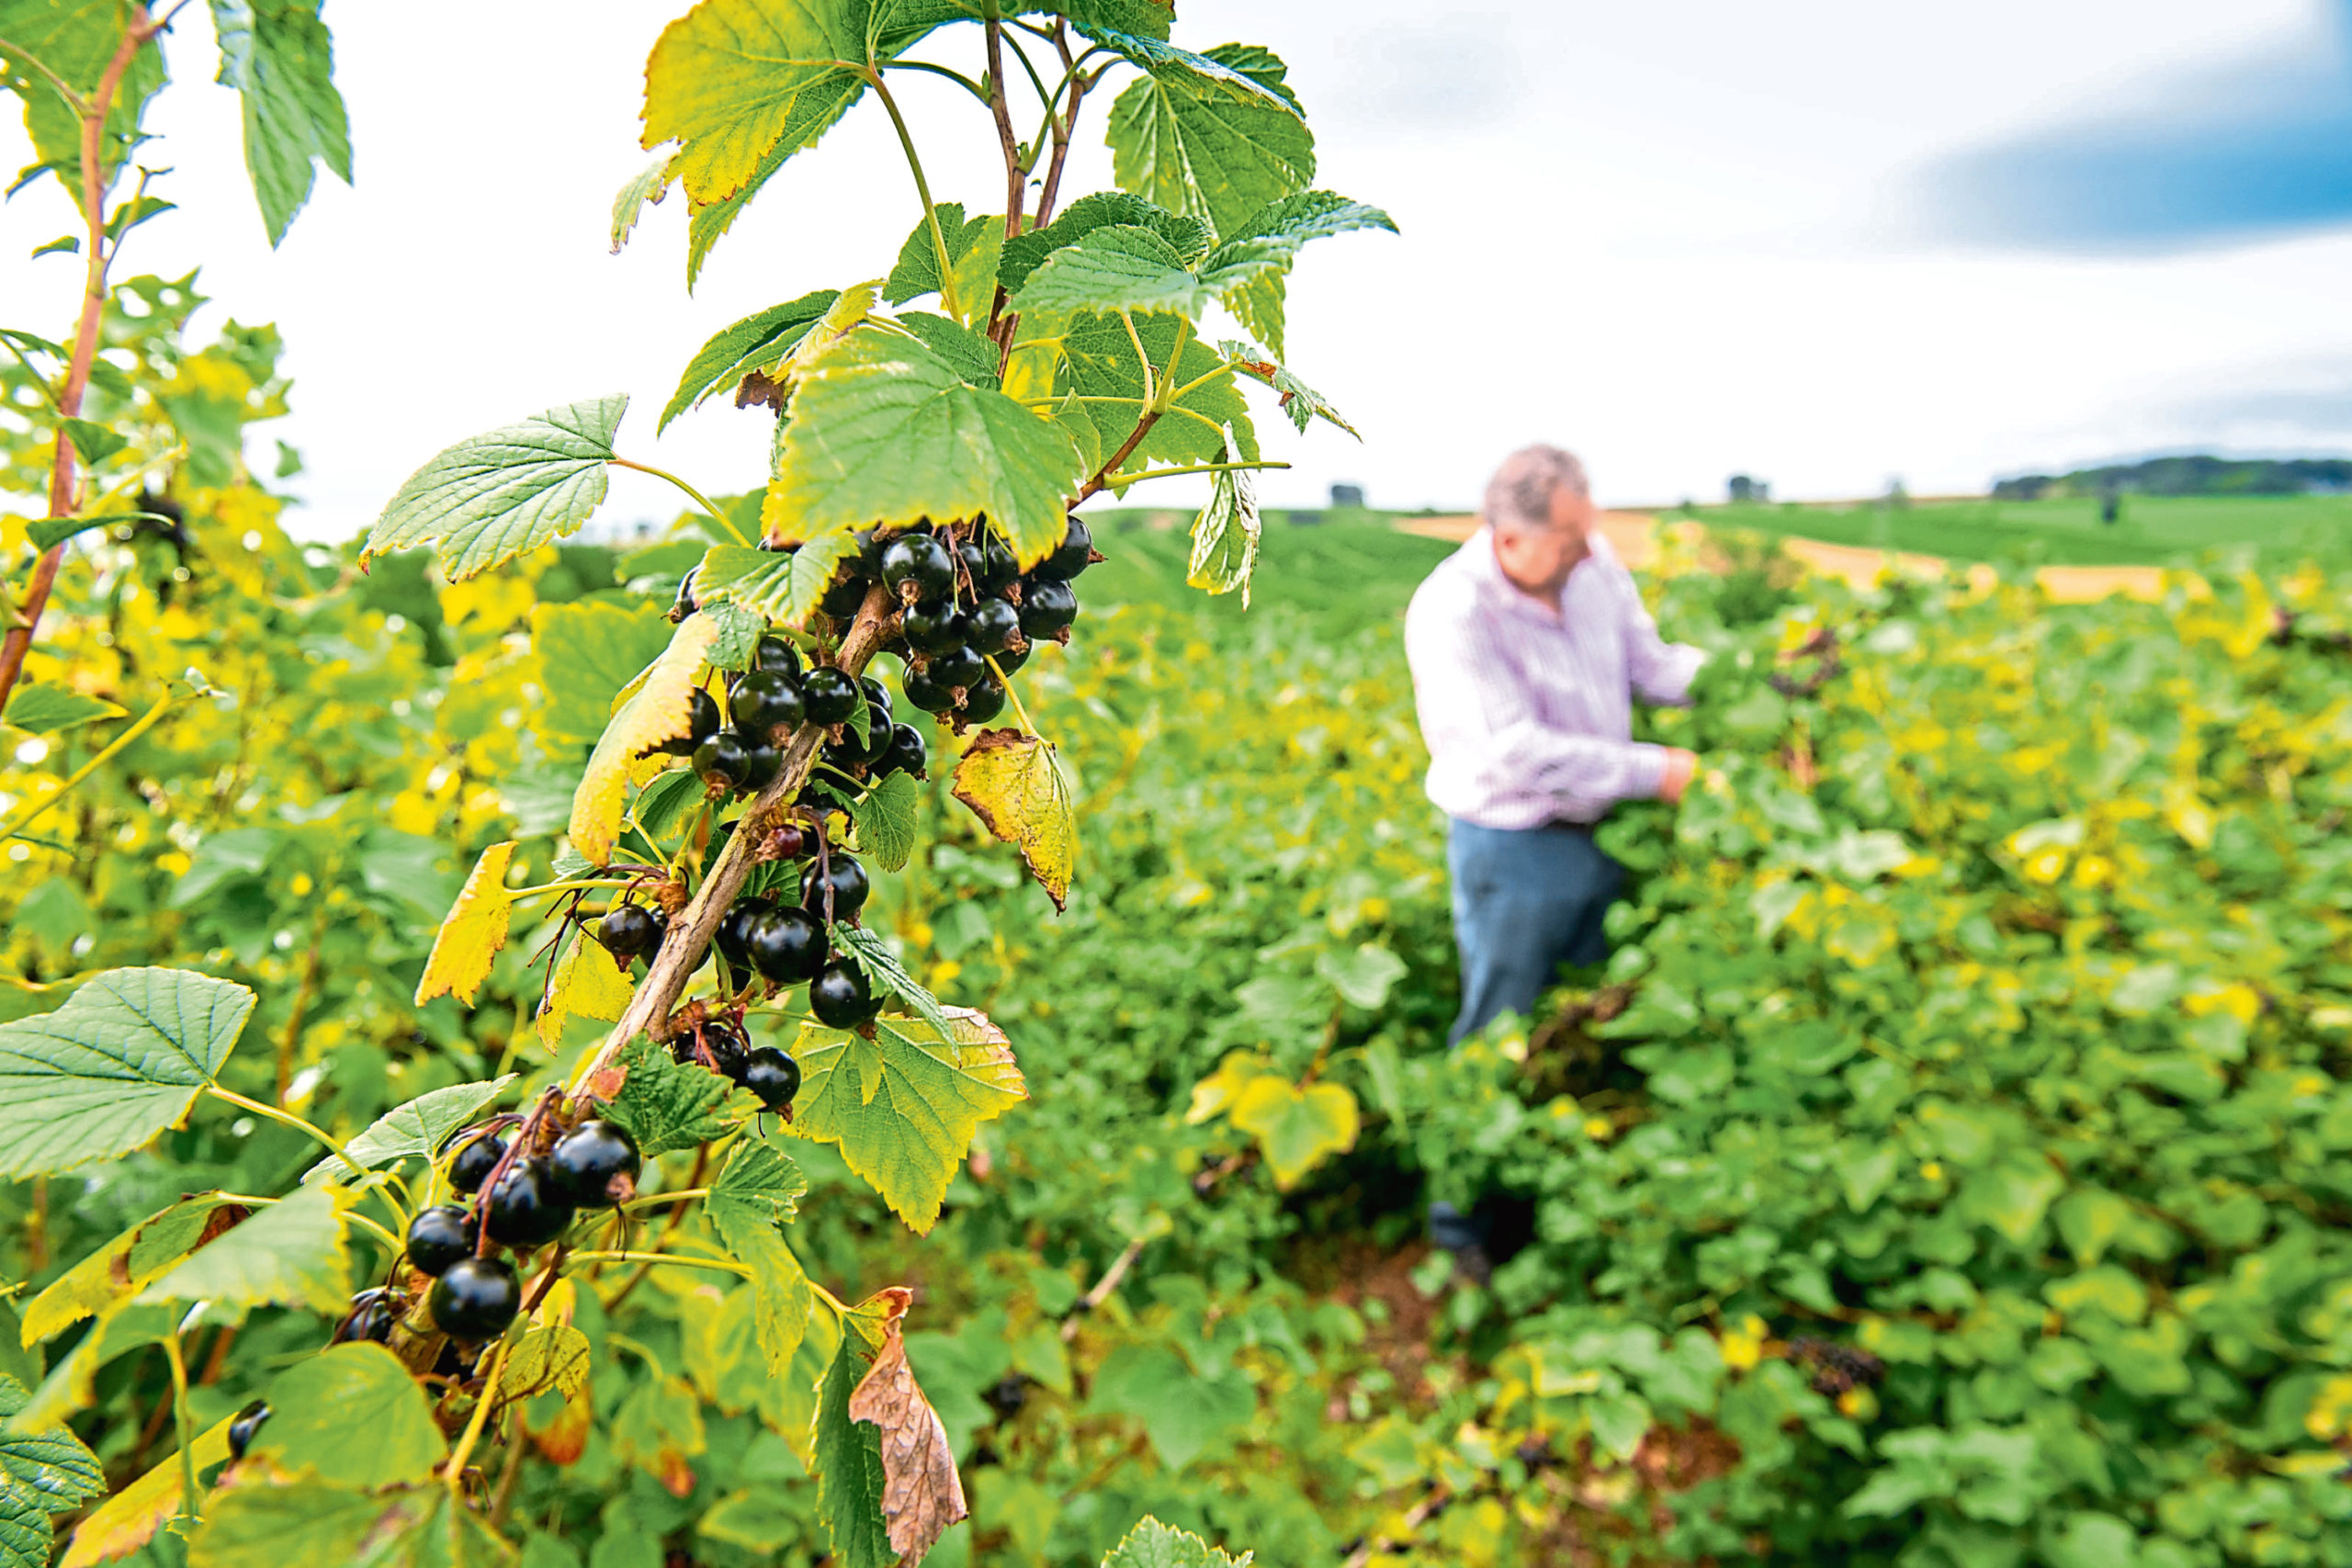 Dundee blackcurrant farmer, Andrew Husband, inspects the berries he is growing for Ribena. Picture provided by the James Hutton Institute.